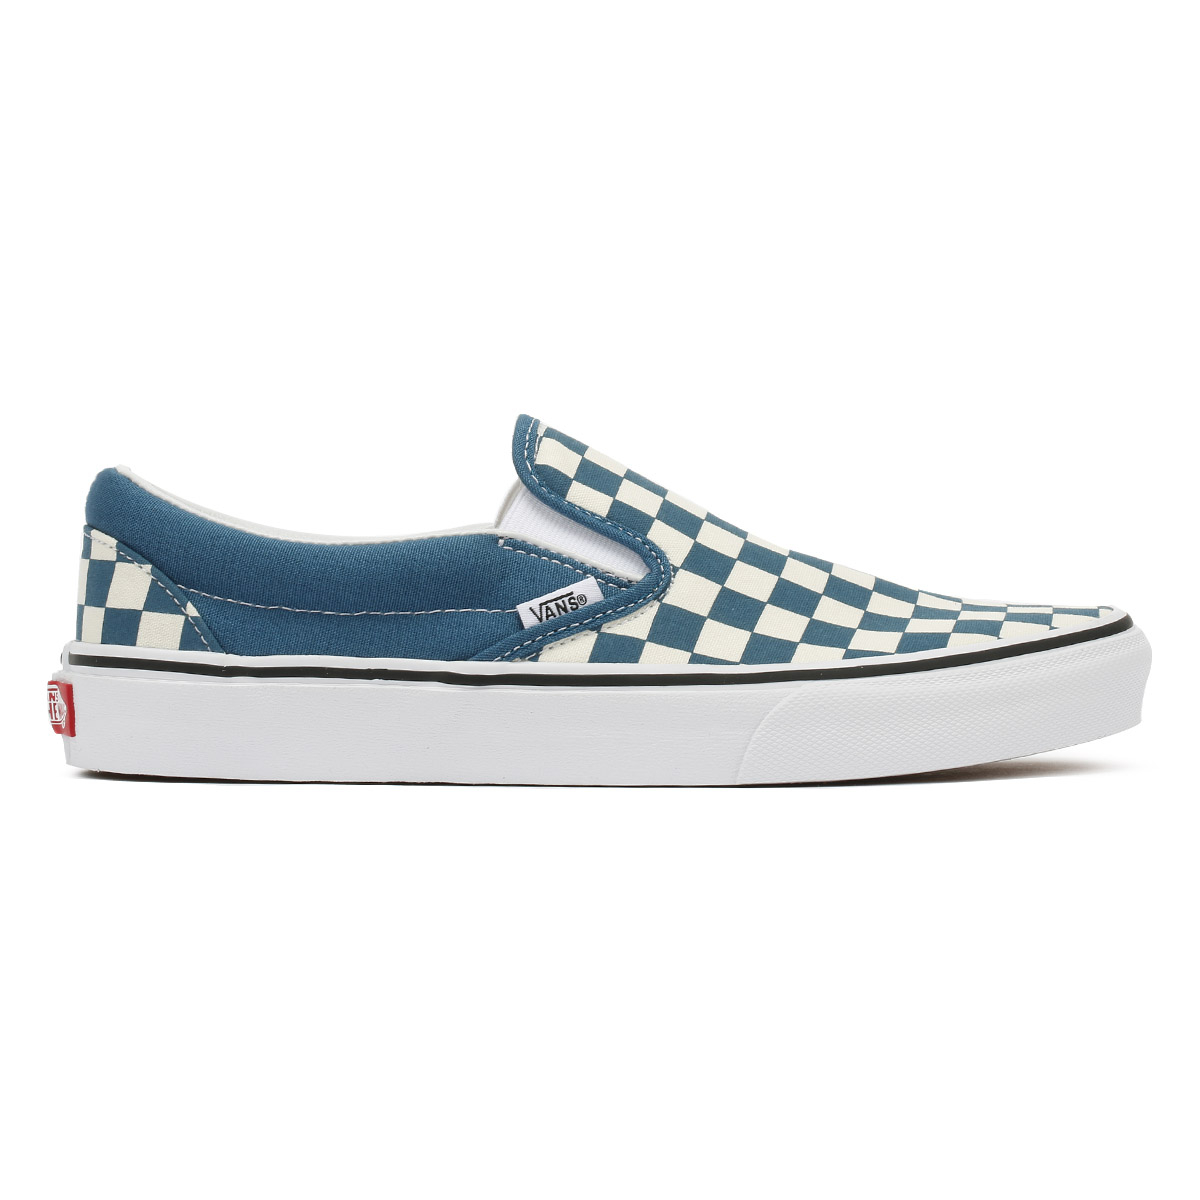 0b5a01a2229 Vans Unisex Trainers Corsair   True White Checkerboard Classic Slip On Shoes